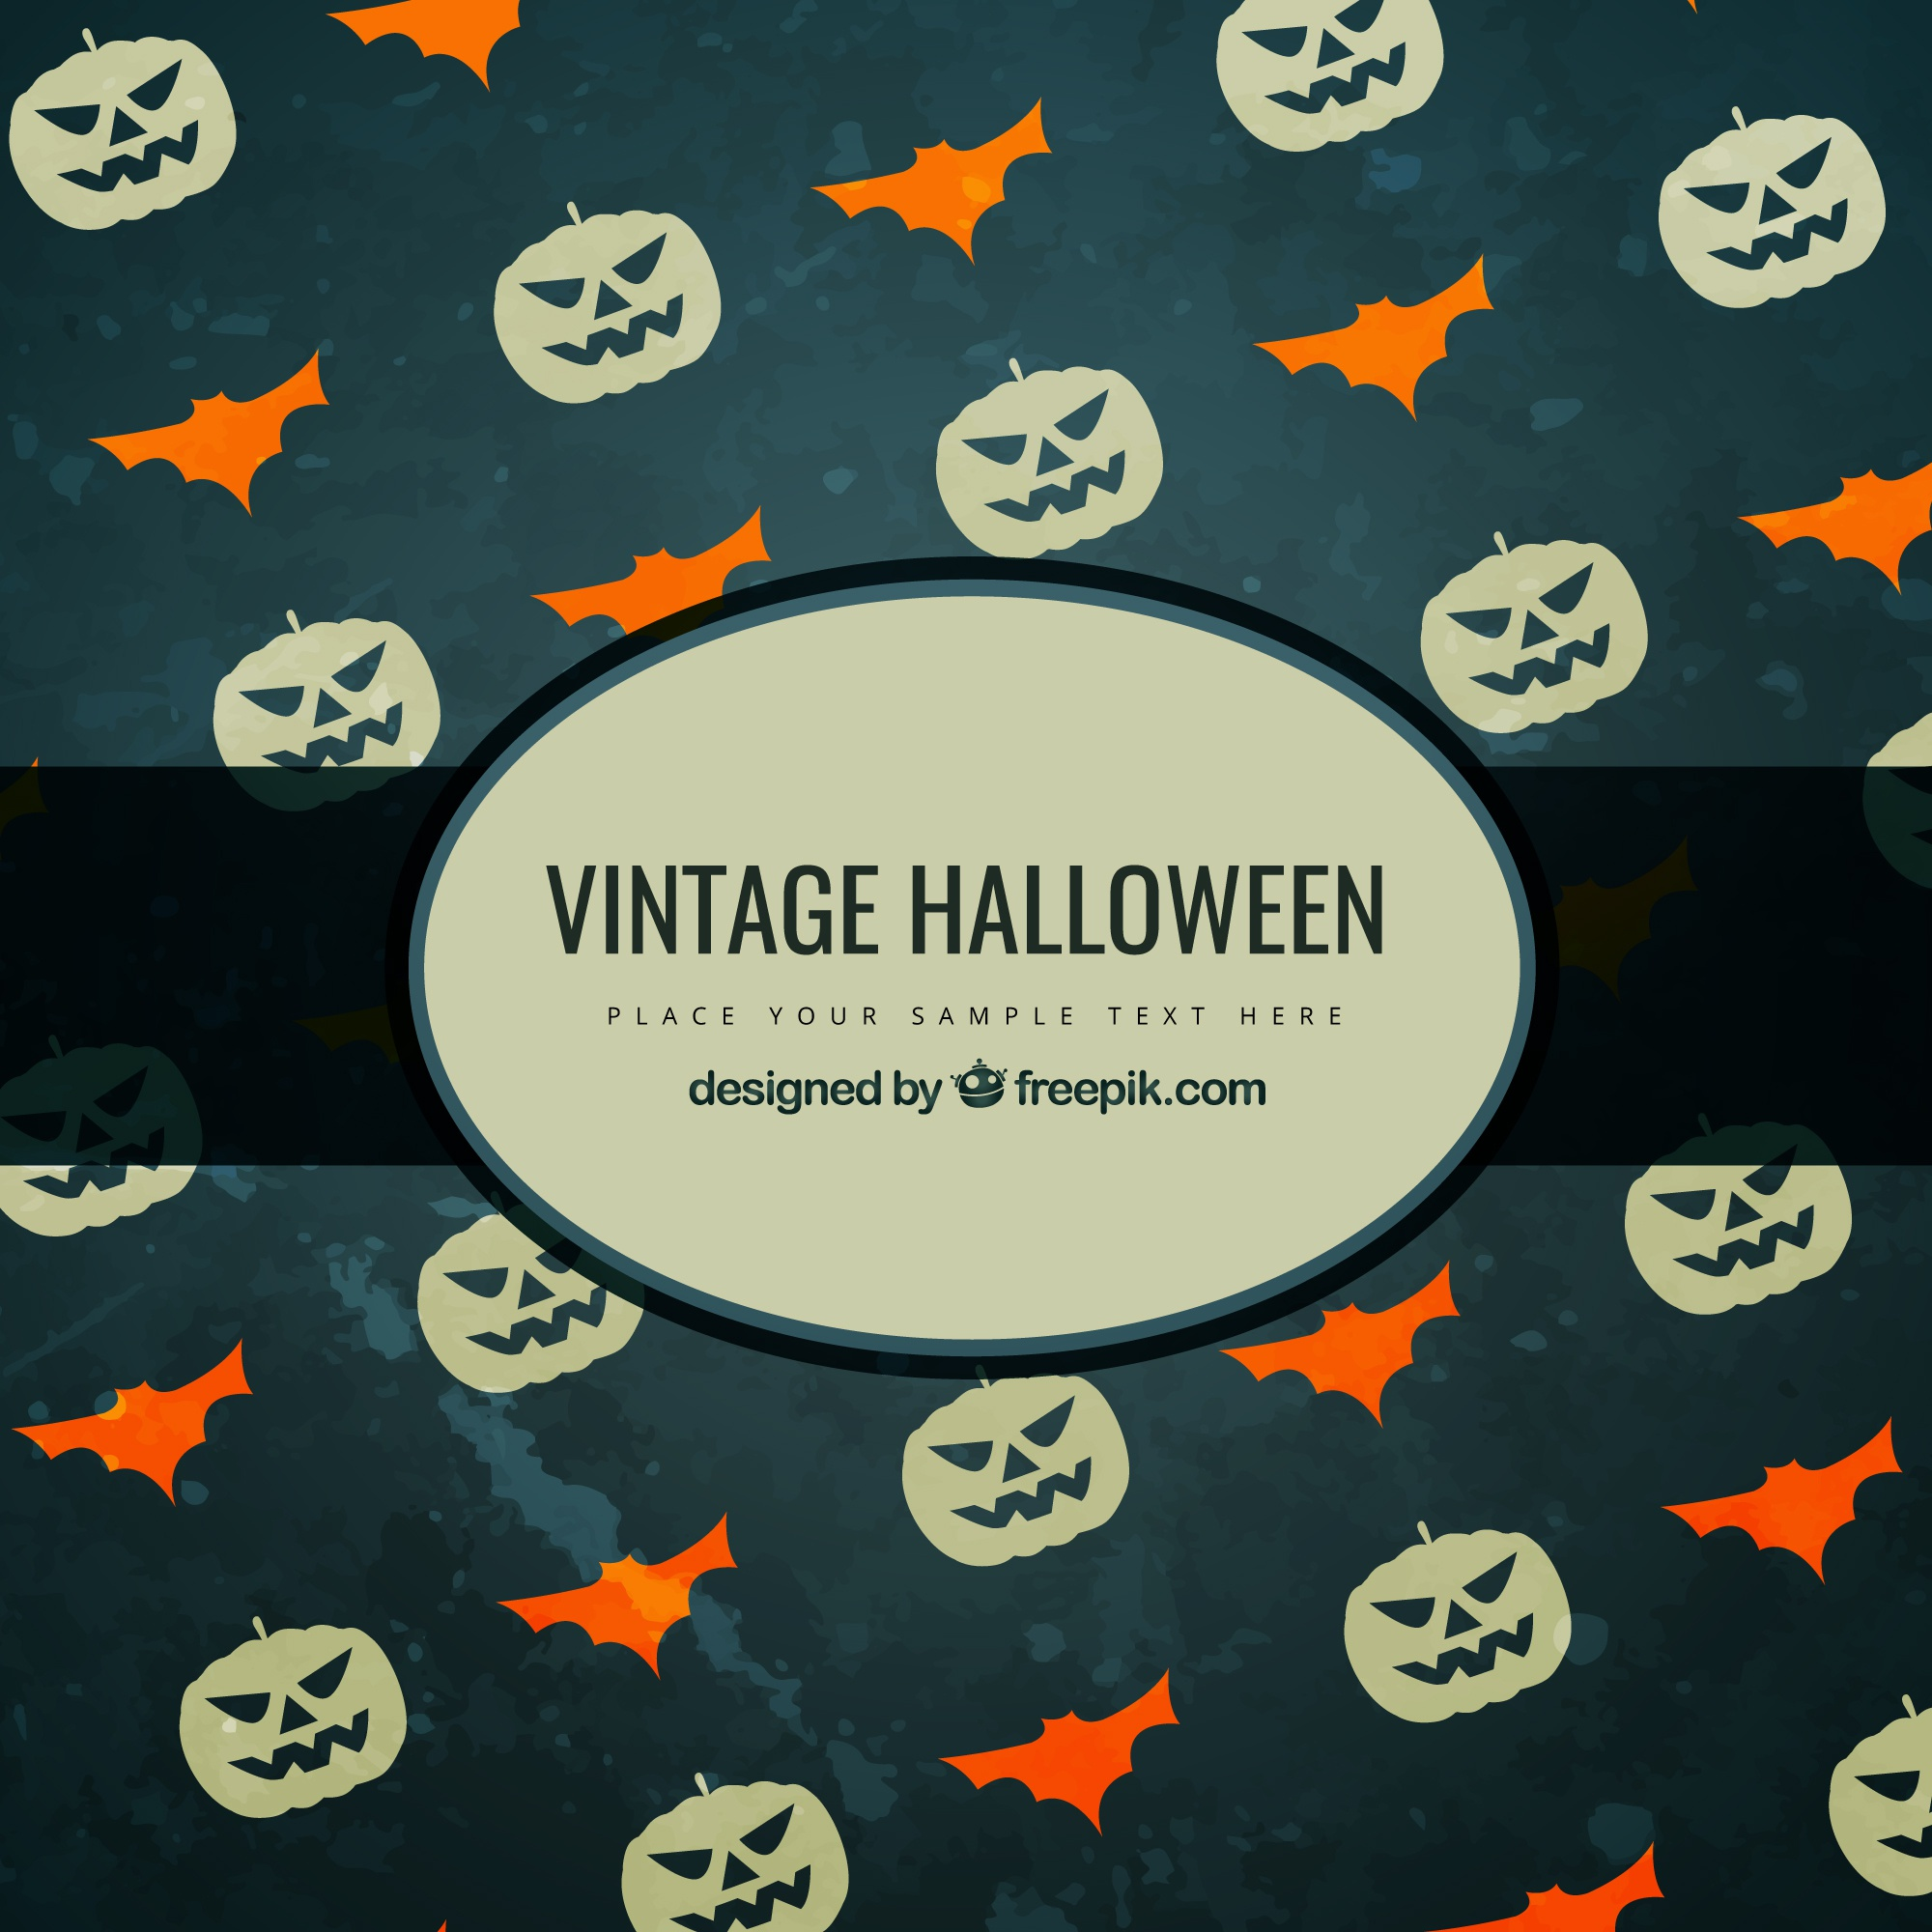 Vintage halloween background